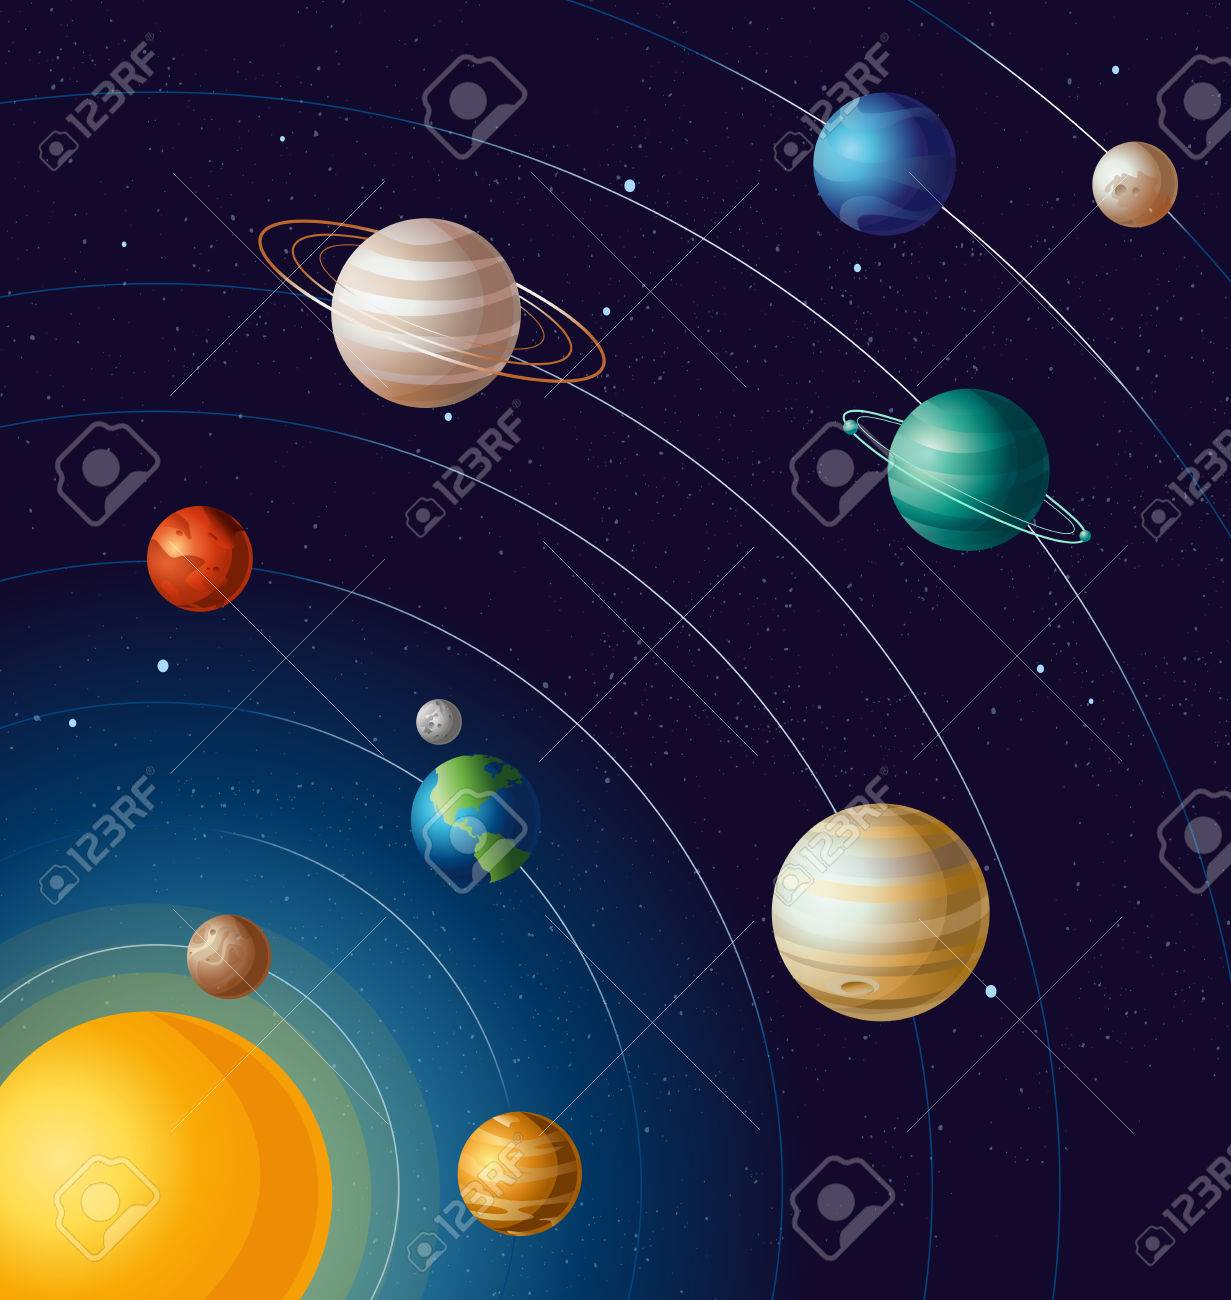 Vector Illustration Of Planets On Orbits The Sun Astronomy Educational Royalty Free Cliparts Vectors And Stock Illustration Image 83277834